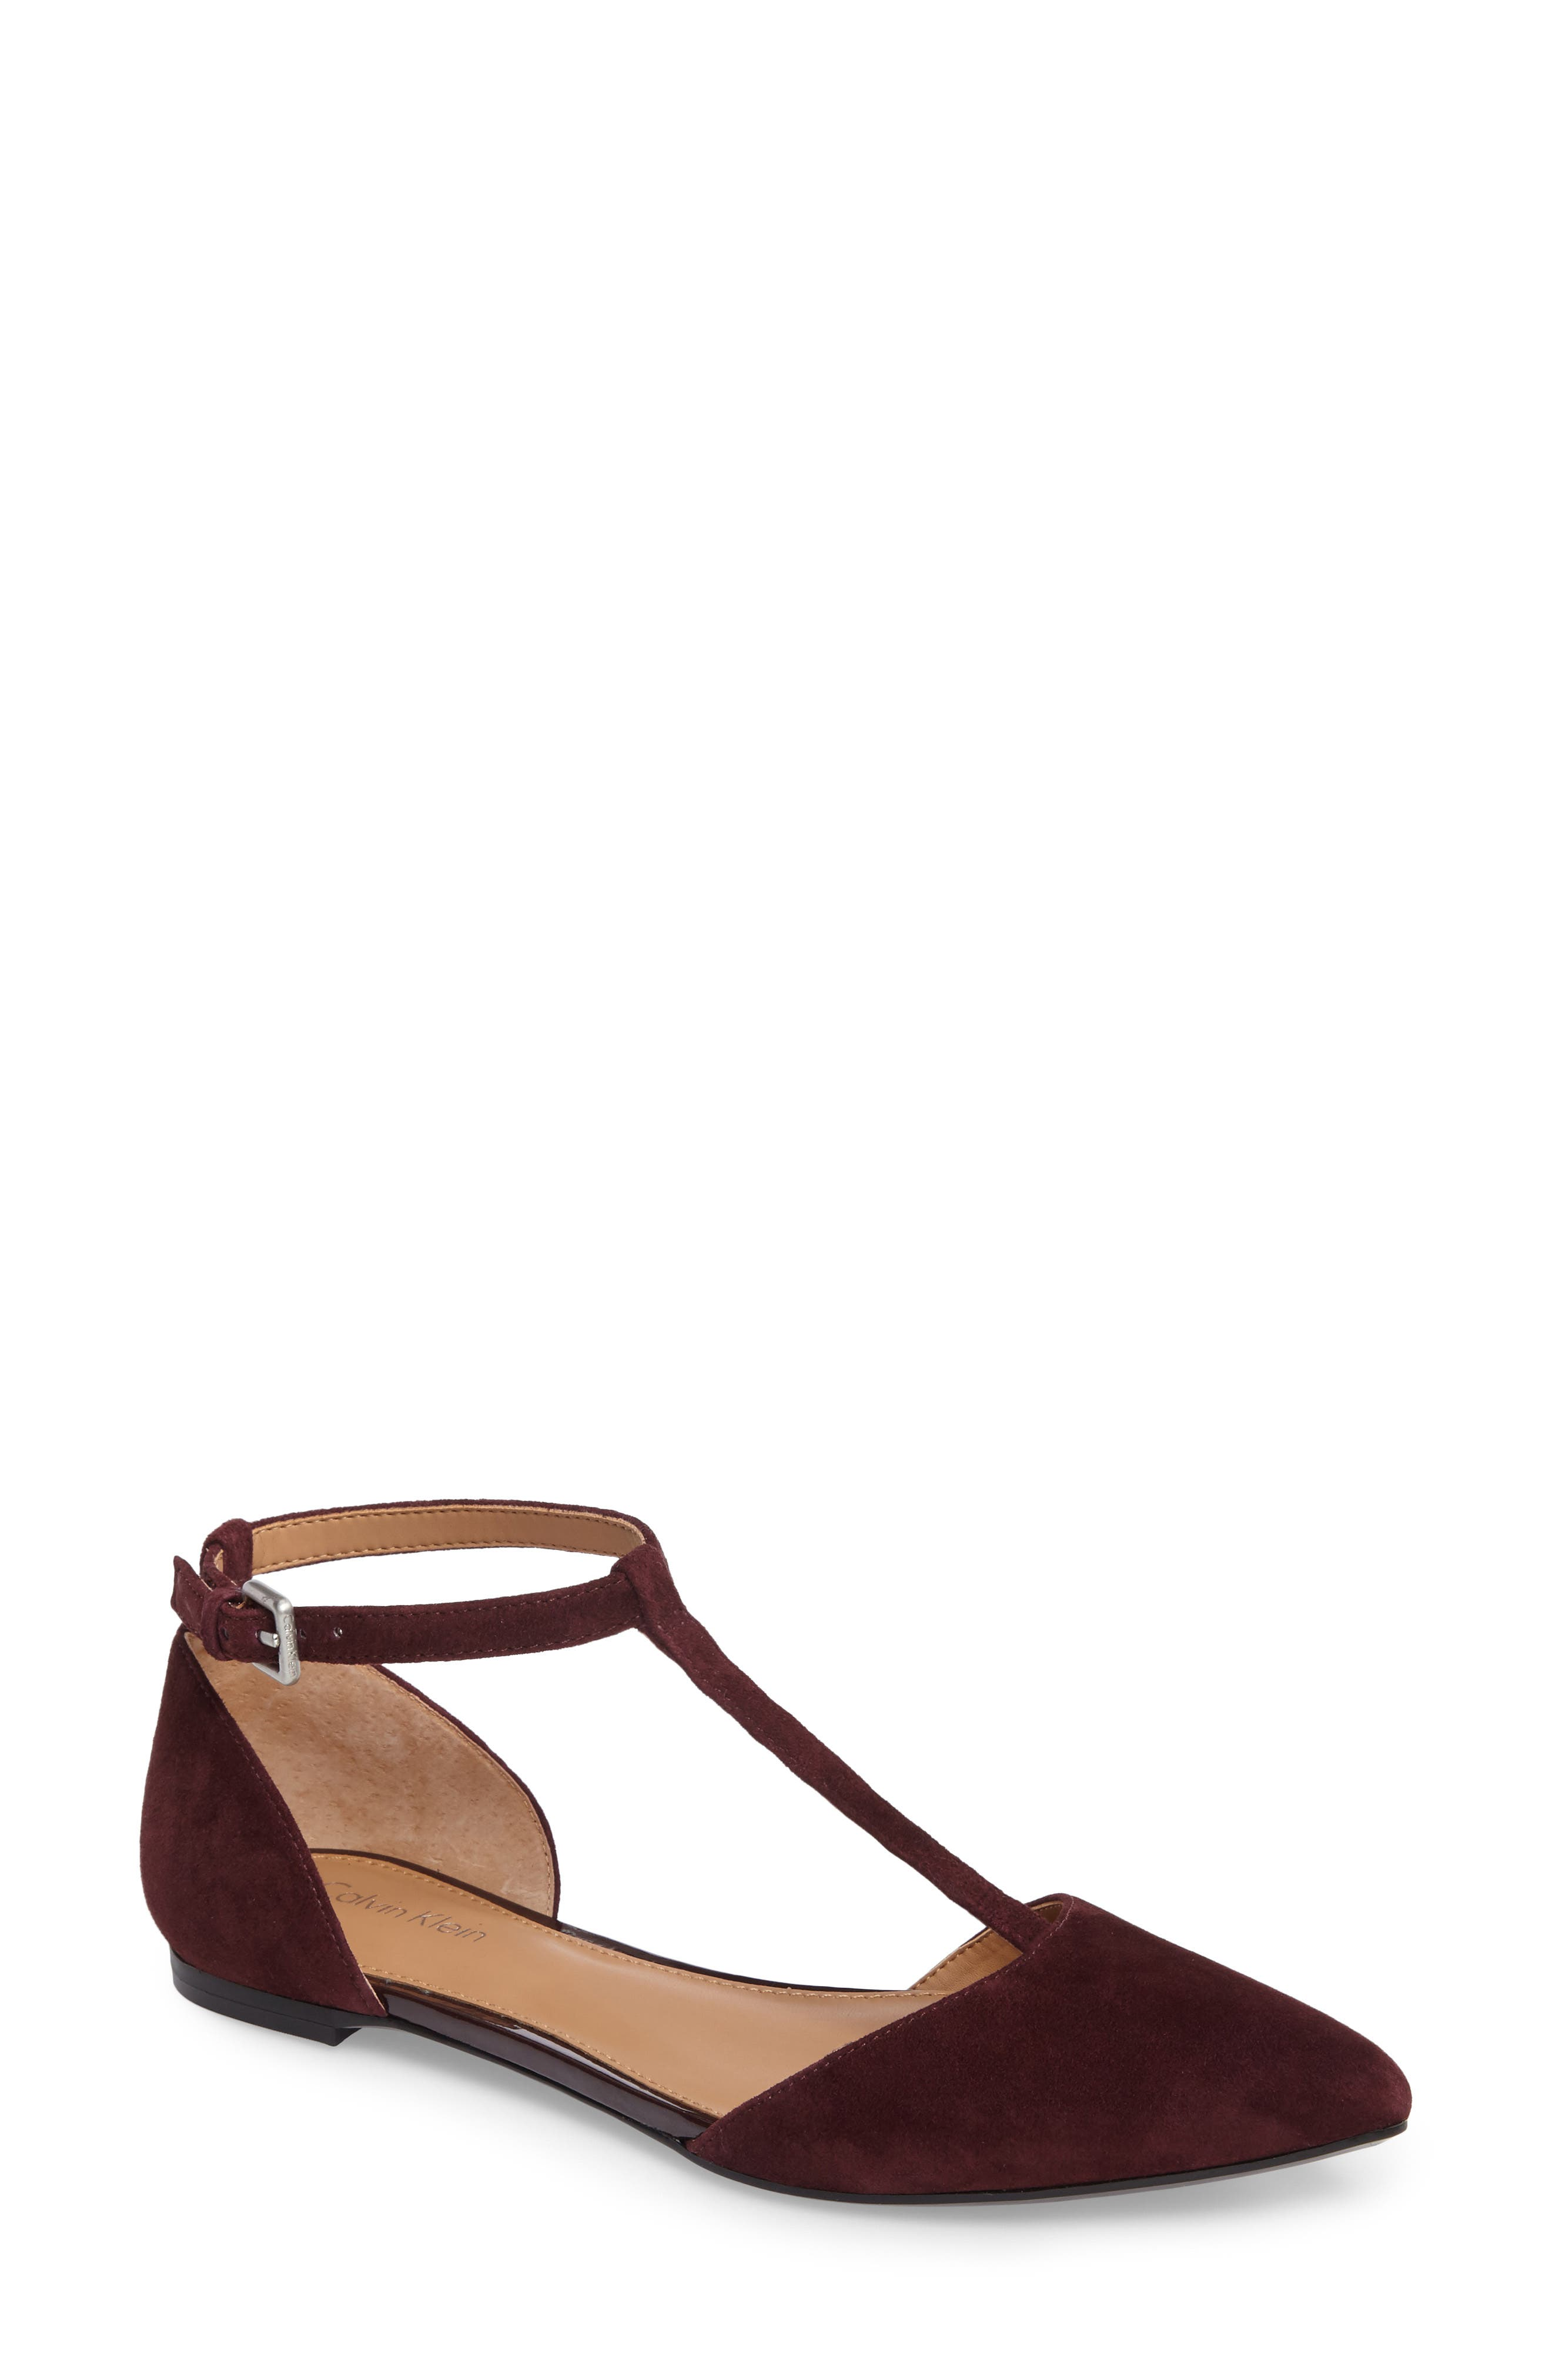 Alternate Image 1 Selected - Calvin Klein 'Ghita' T-Strap Flat (Women)